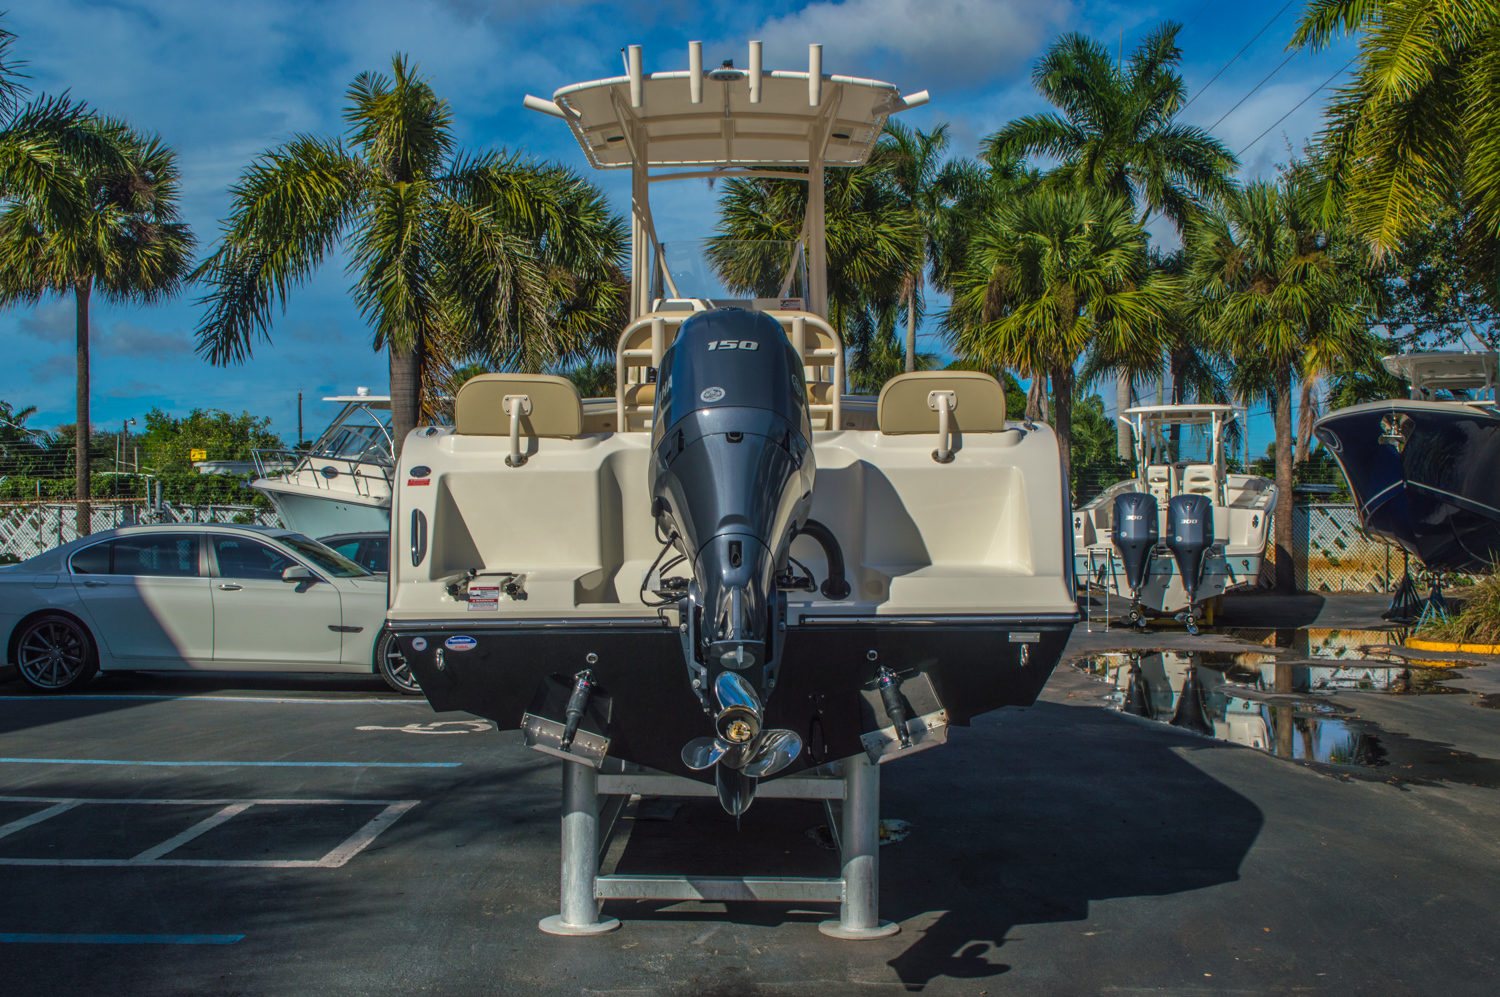 Thumbnail 7 for New 2016 Cobia 217 Center Console boat for sale in West Palm Beach, FL